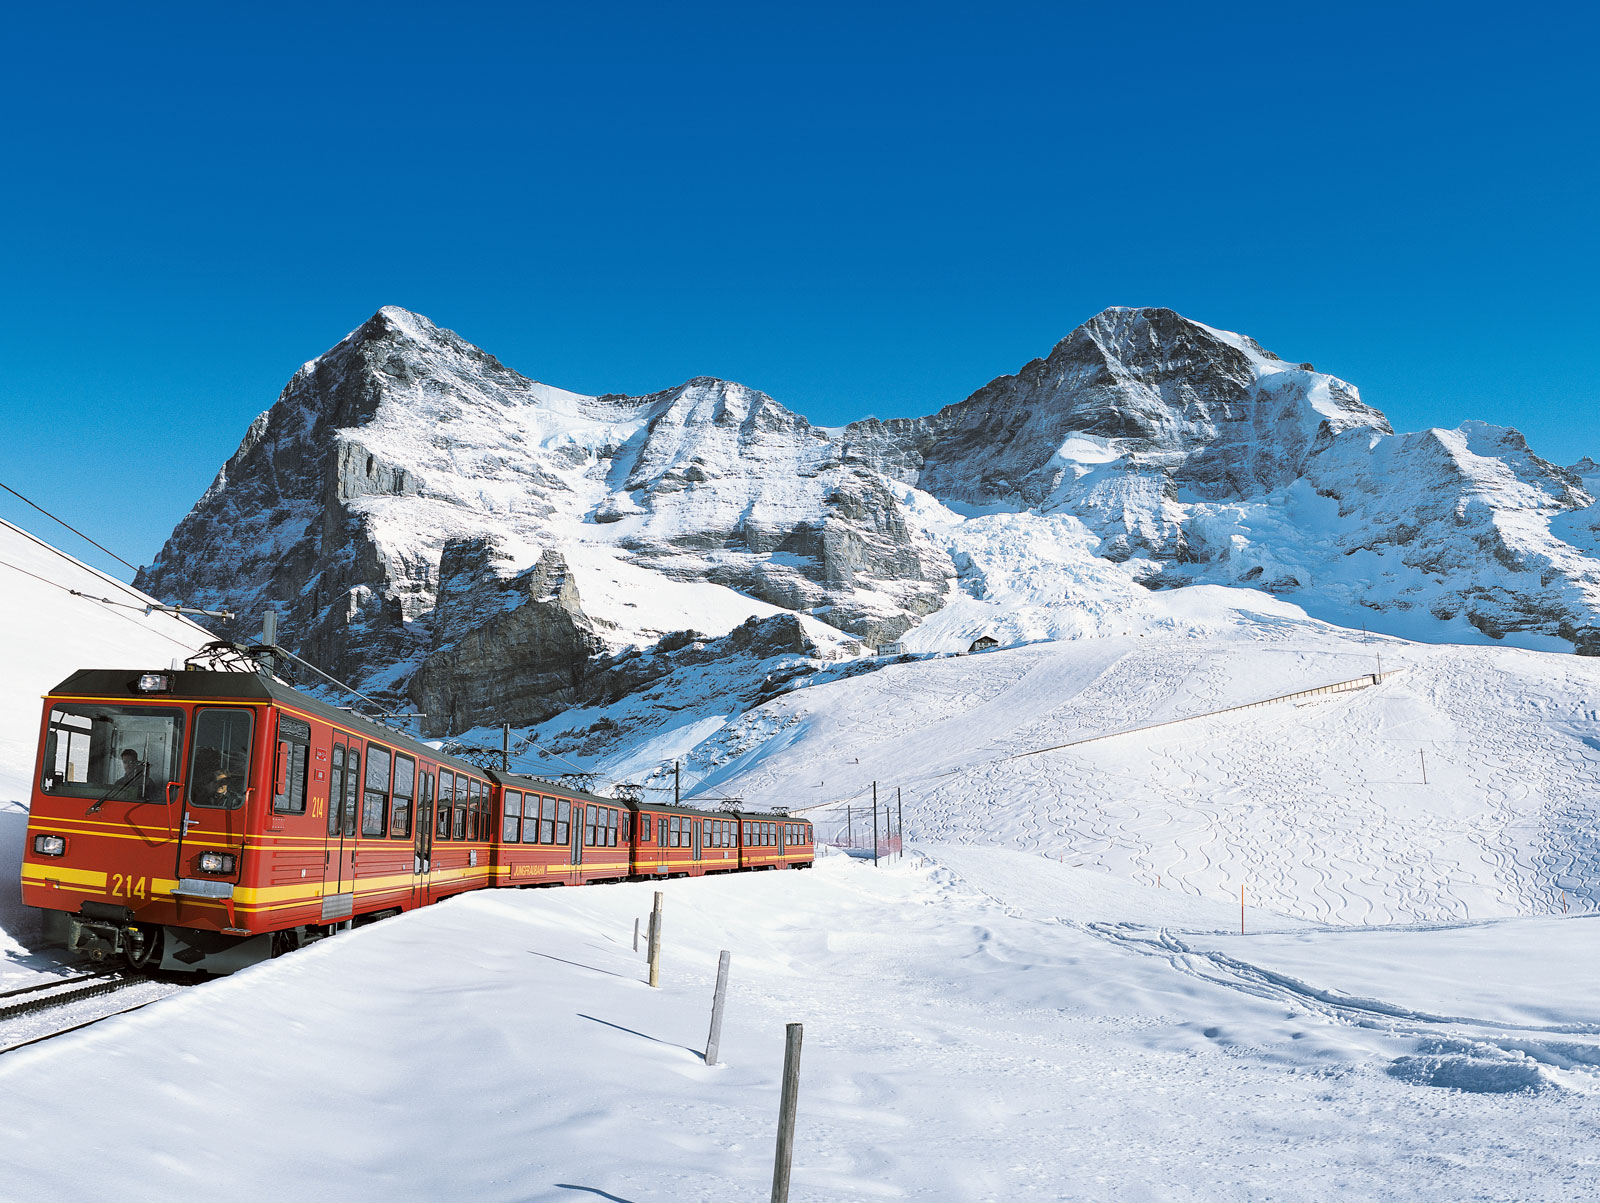 12501_Jungfraujoch_Top_of_Europe_Tour_from_Zurich_e7f631983ab4b32f84456b08b41fdd1d_original